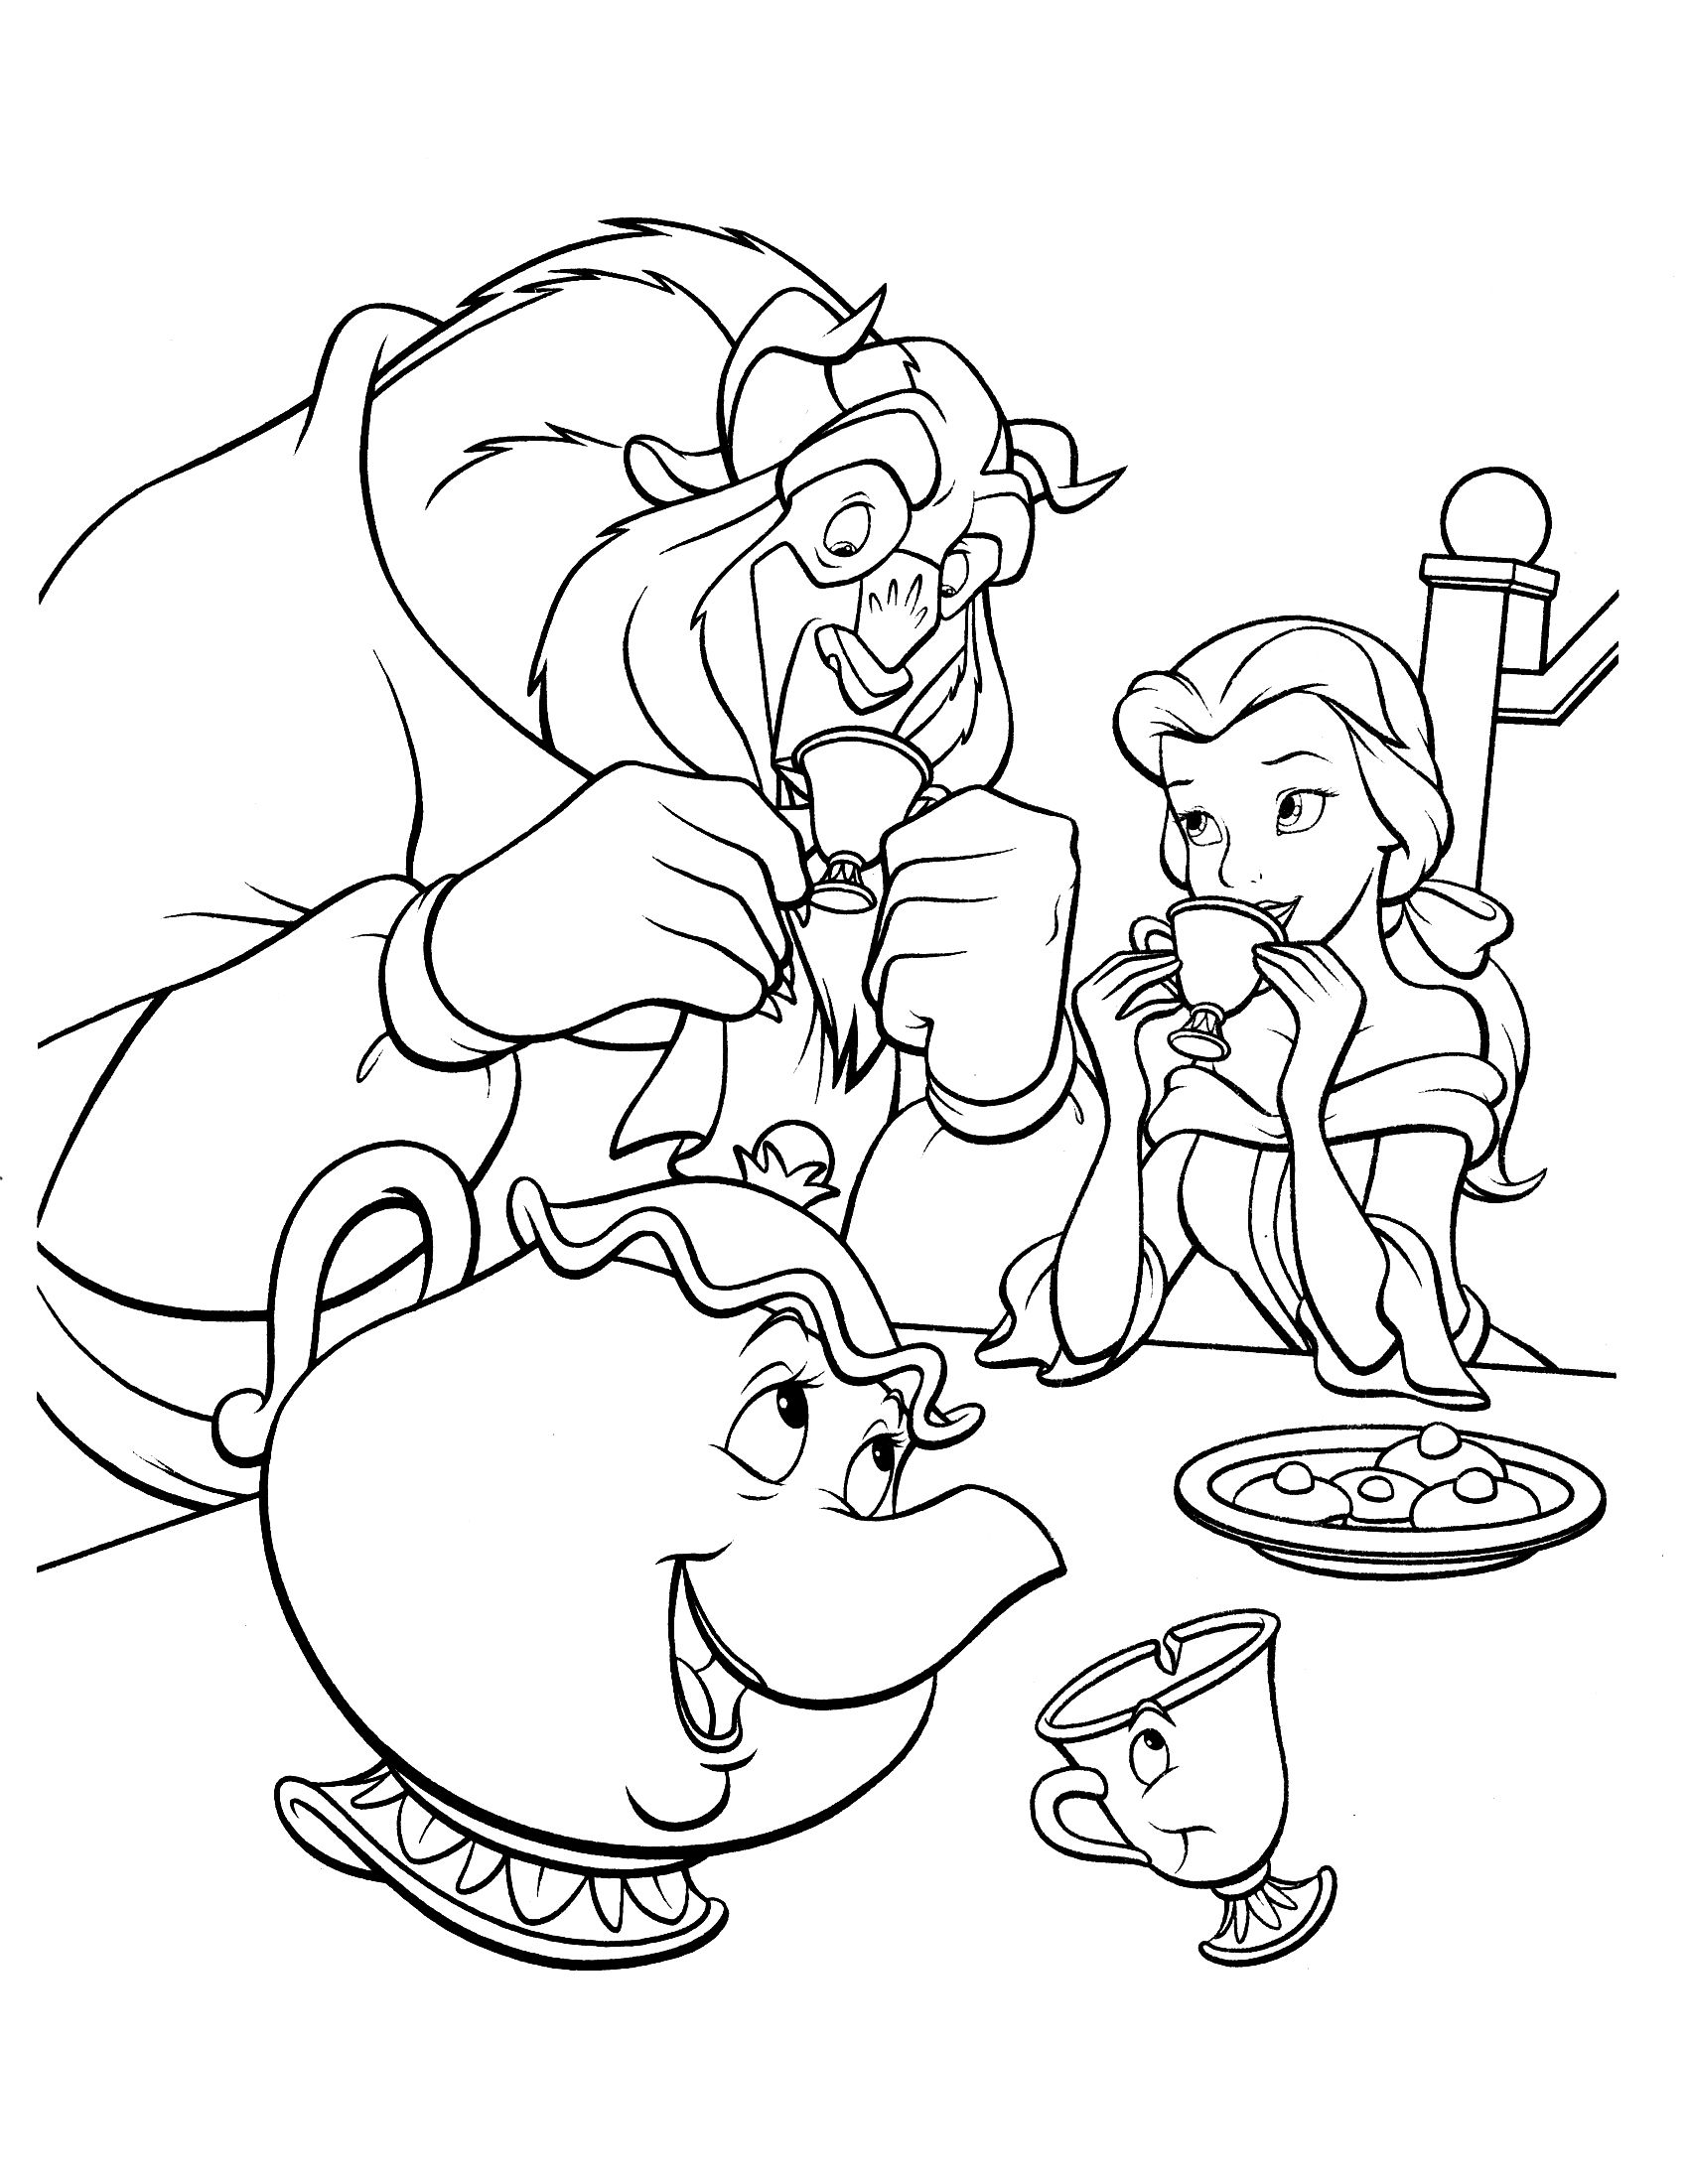 beauty and the beast coloring page # 1